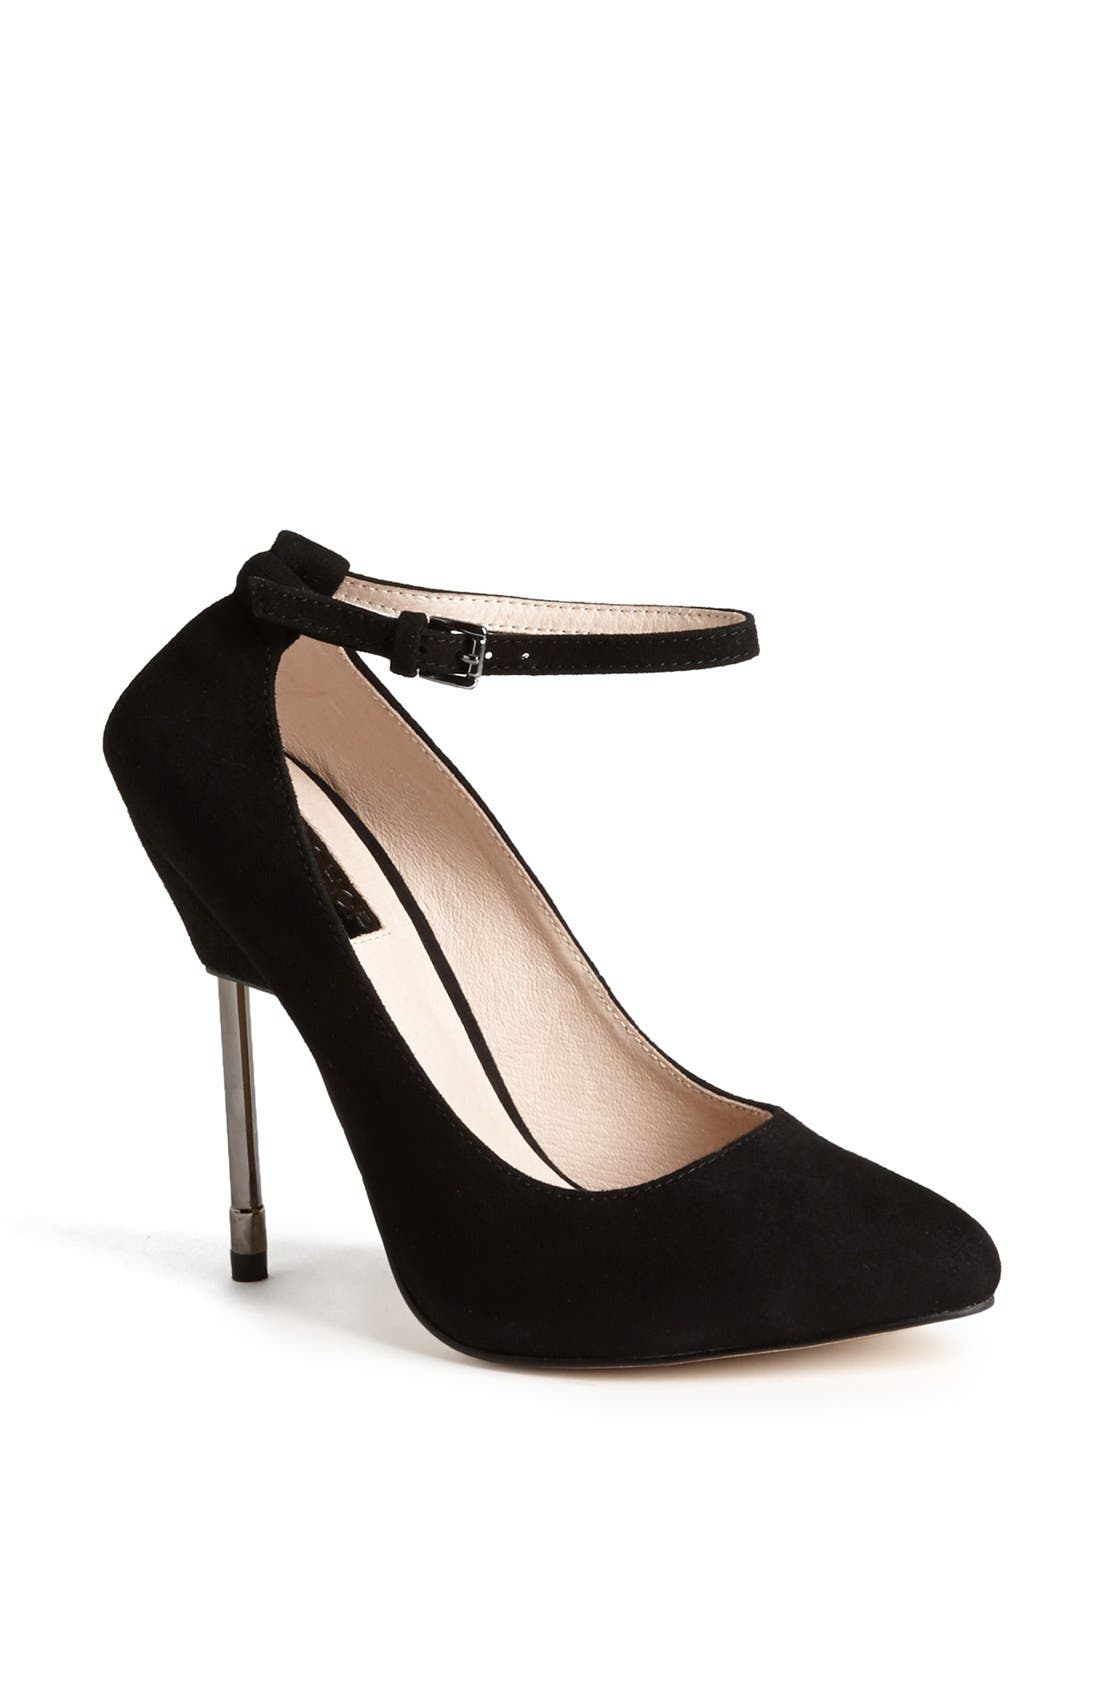 Alternate Image 1 Selected - Topshop 'Giddy' Suede Pump